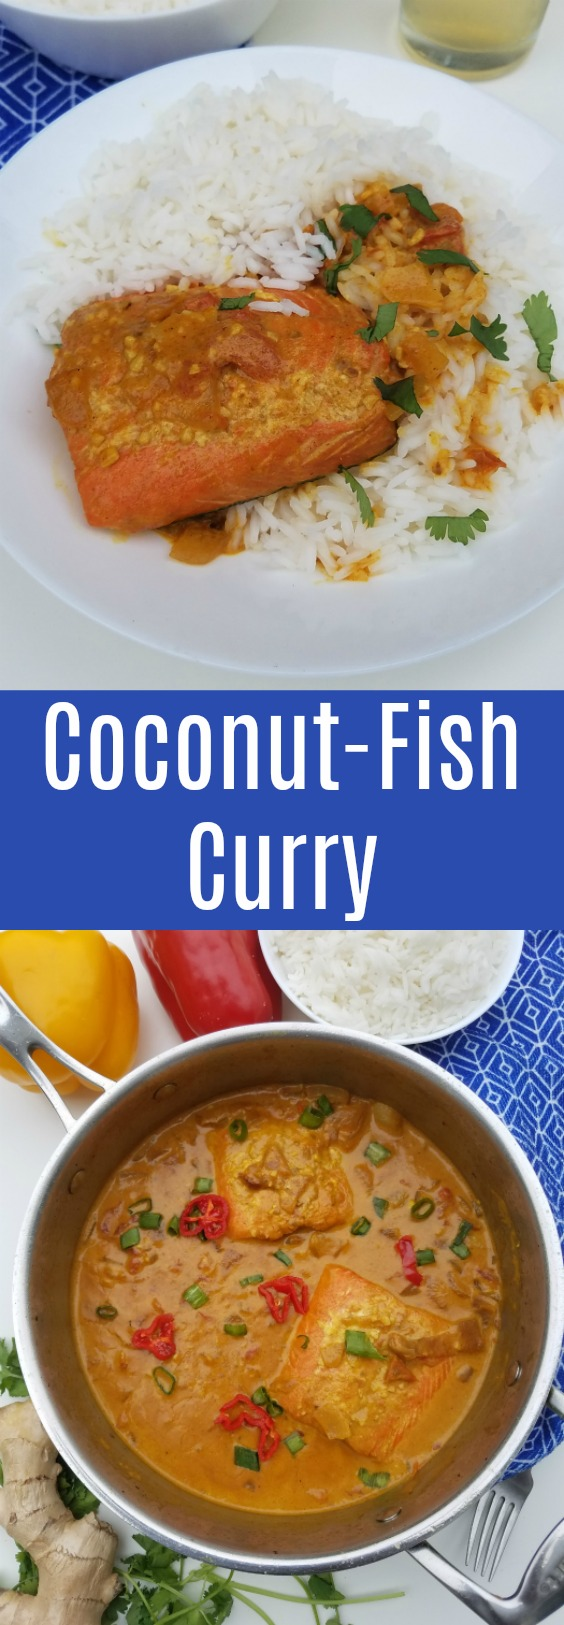 Curry in a hurry. Add this easy coconut fish curry recipe to your menu. Great for a dinner ready in less than 30 minutes @Alaska Seafood #AskForAlaska #IC (ad)